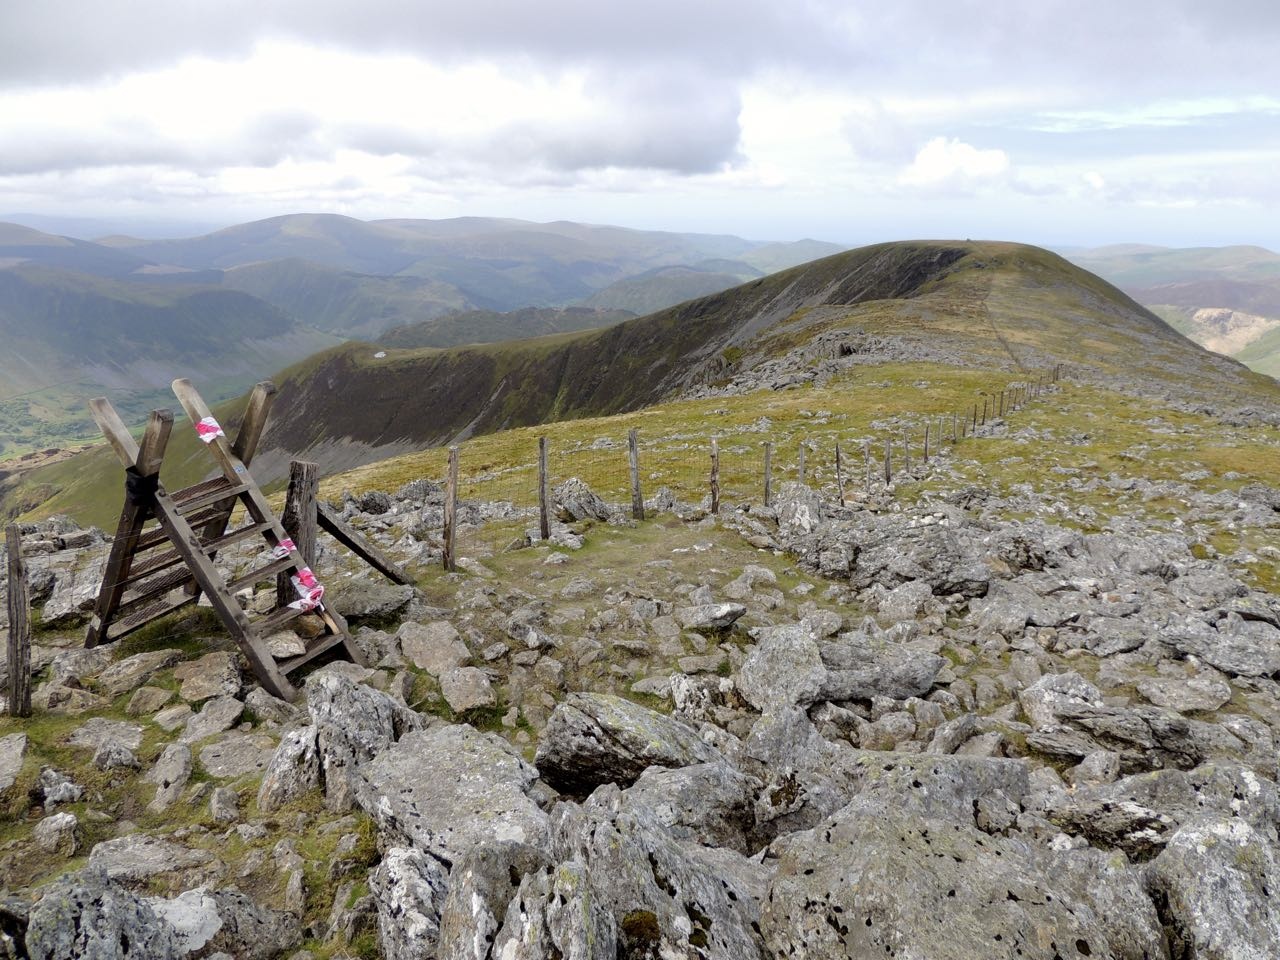 Looking Down the Ridge from Mynydd Pencoed, Cader Idris